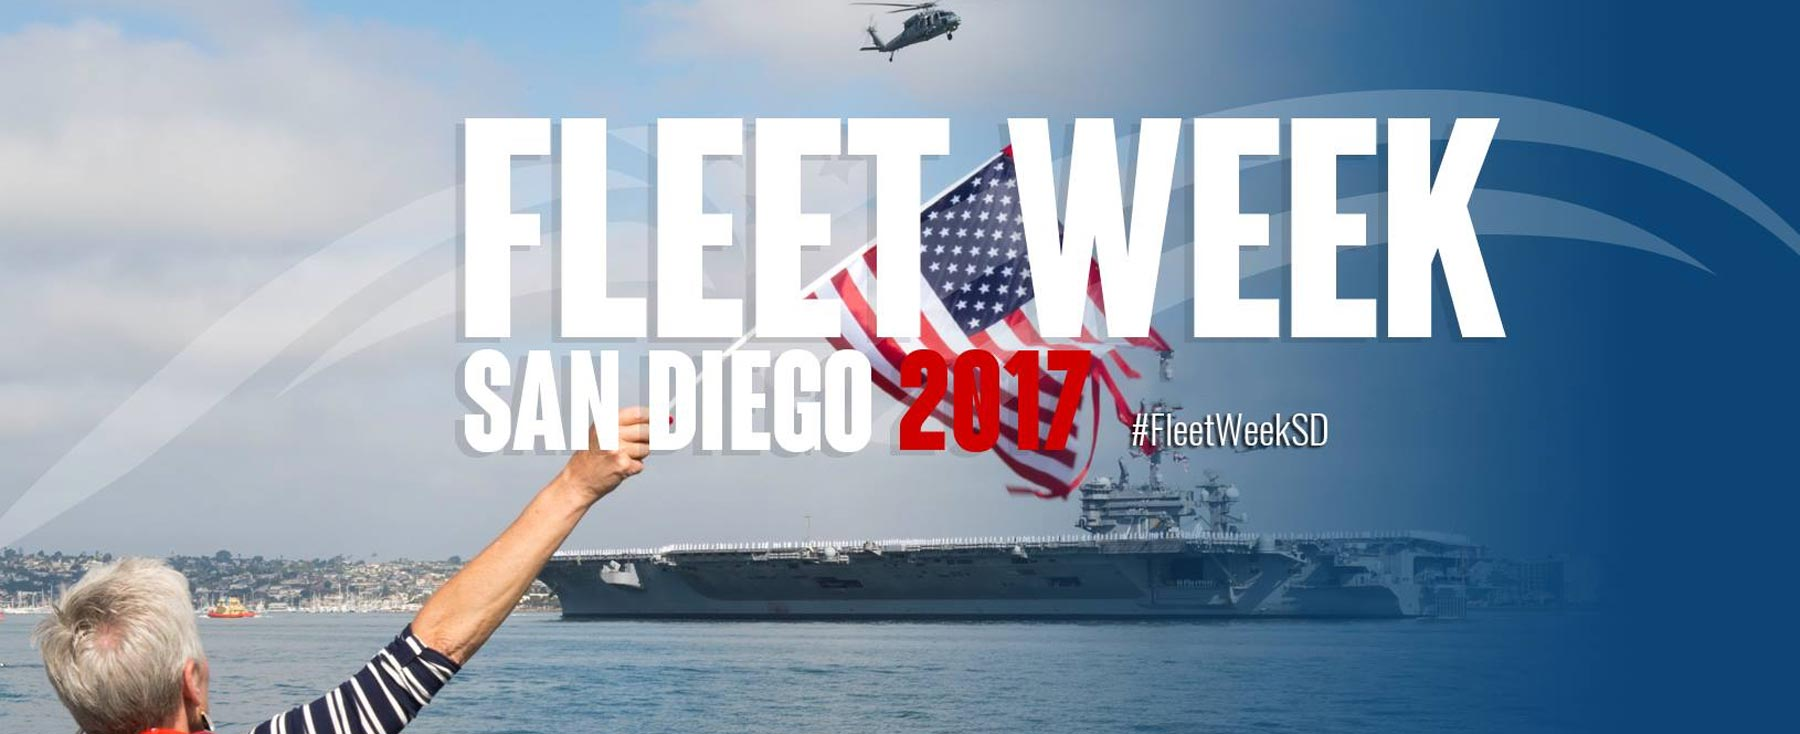 Fleet Week San Diego 2017